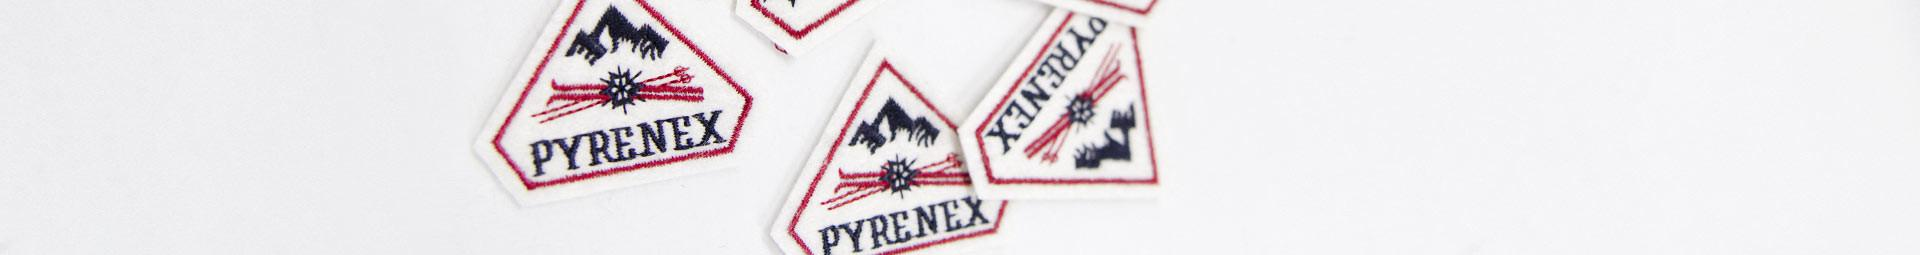 Promotions | Pyrenex | Down jackets, parkas and light jackets